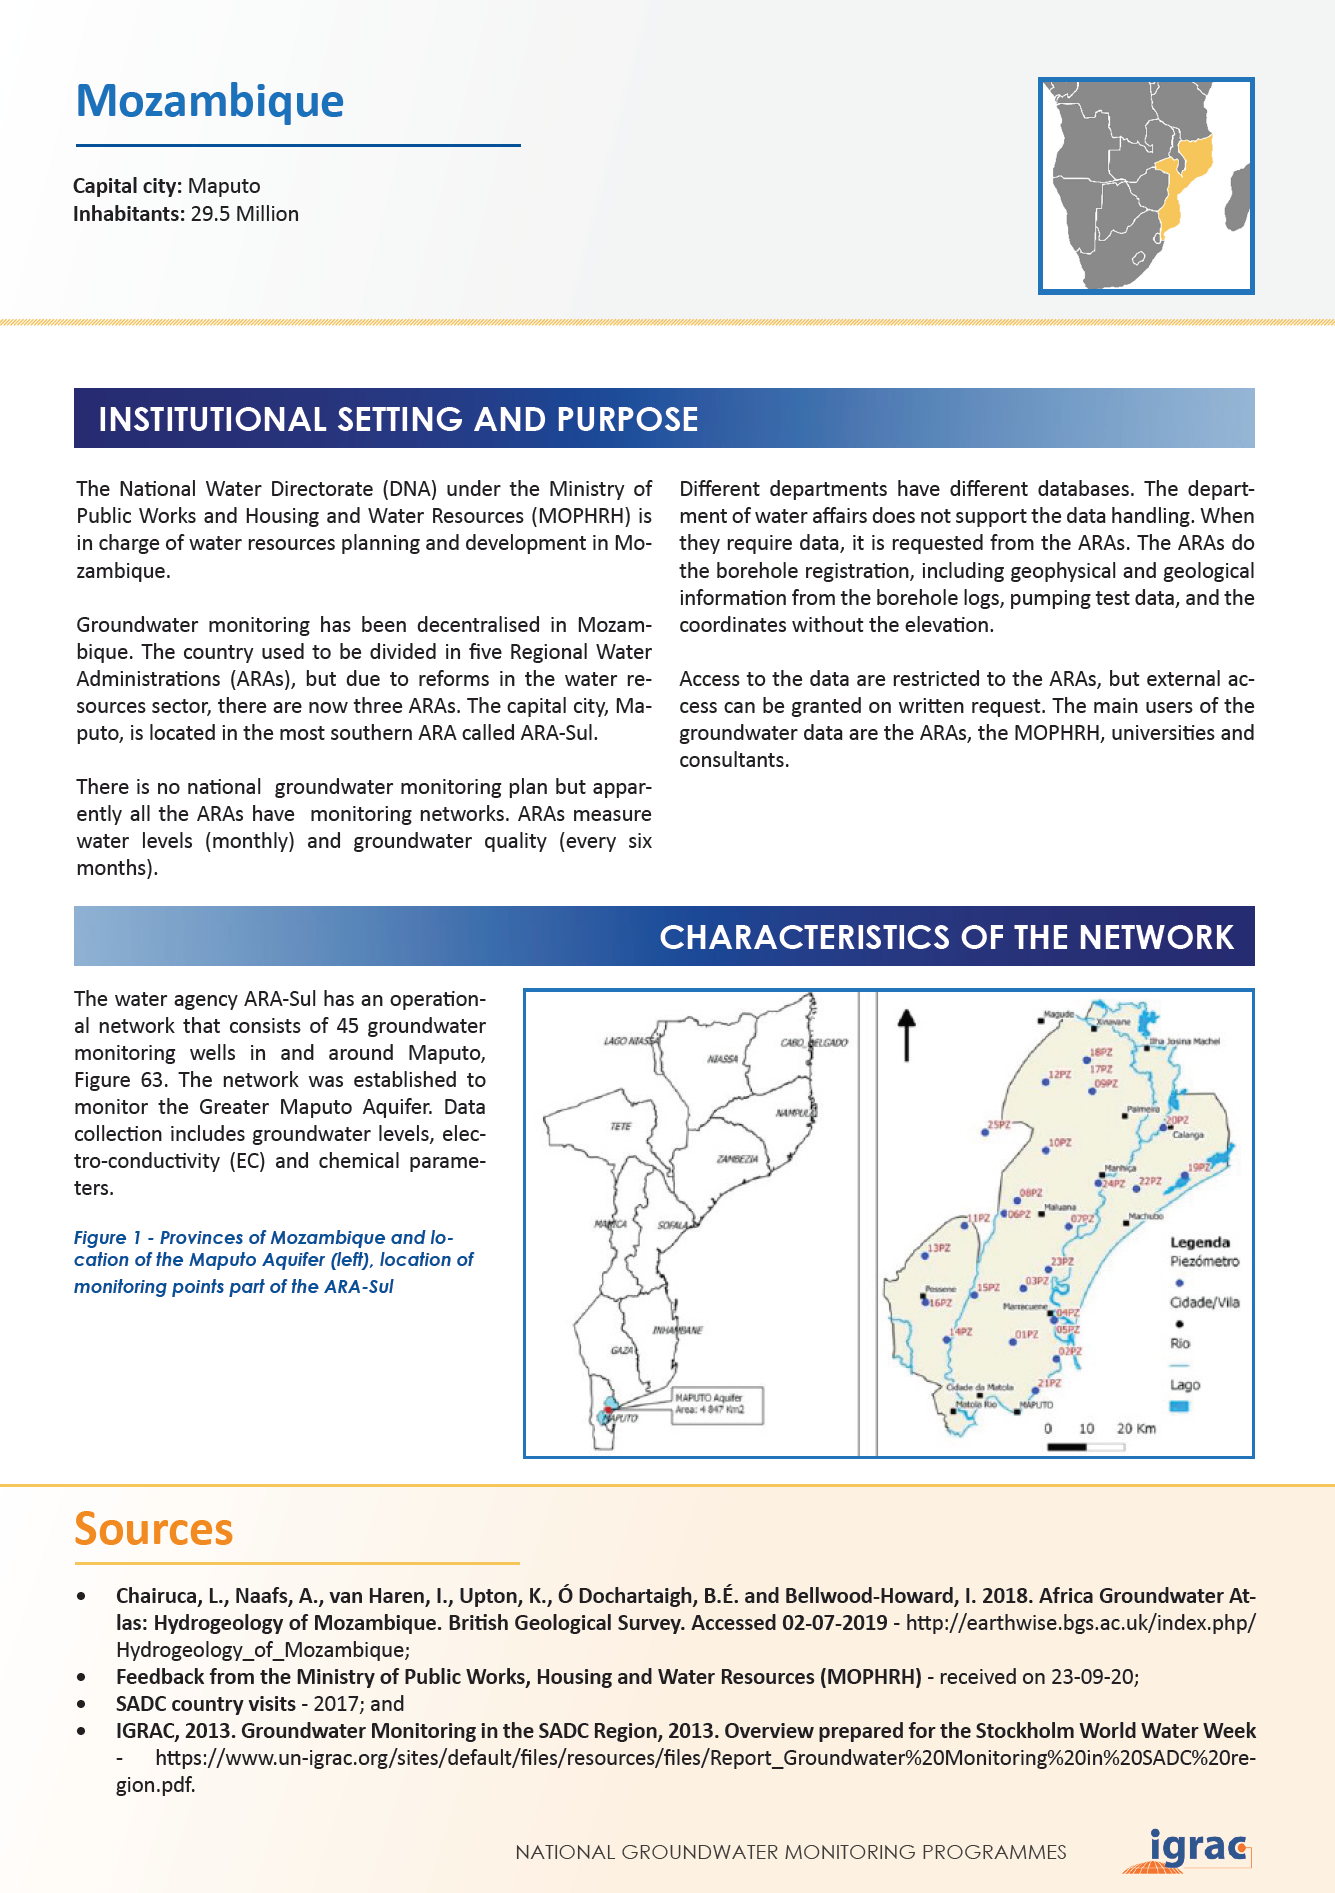 Groundwater monitoring country profile - Mozambique